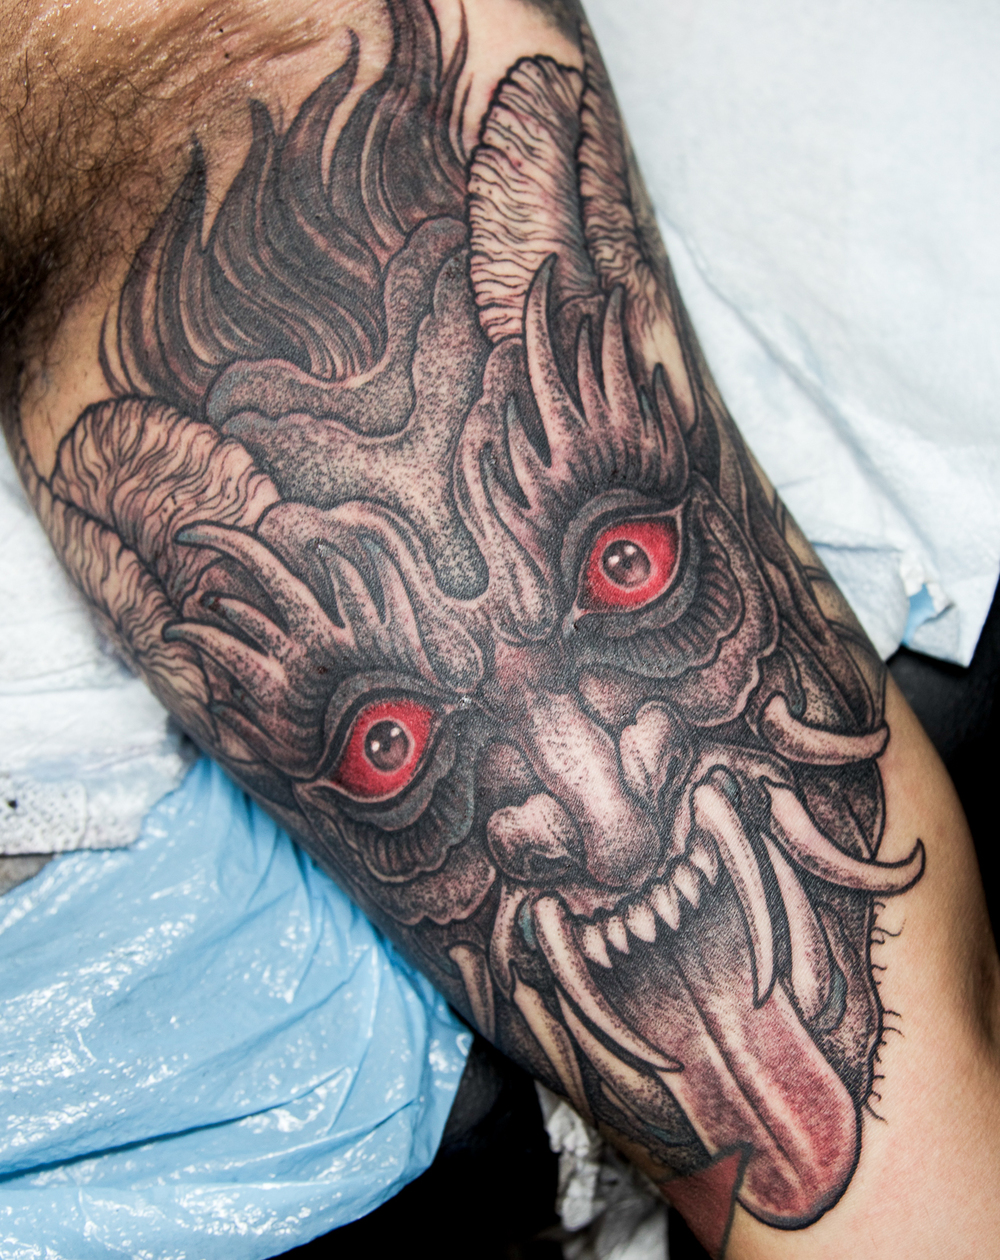 Stipple Devil enrique bernal ejay tattoo.jpg